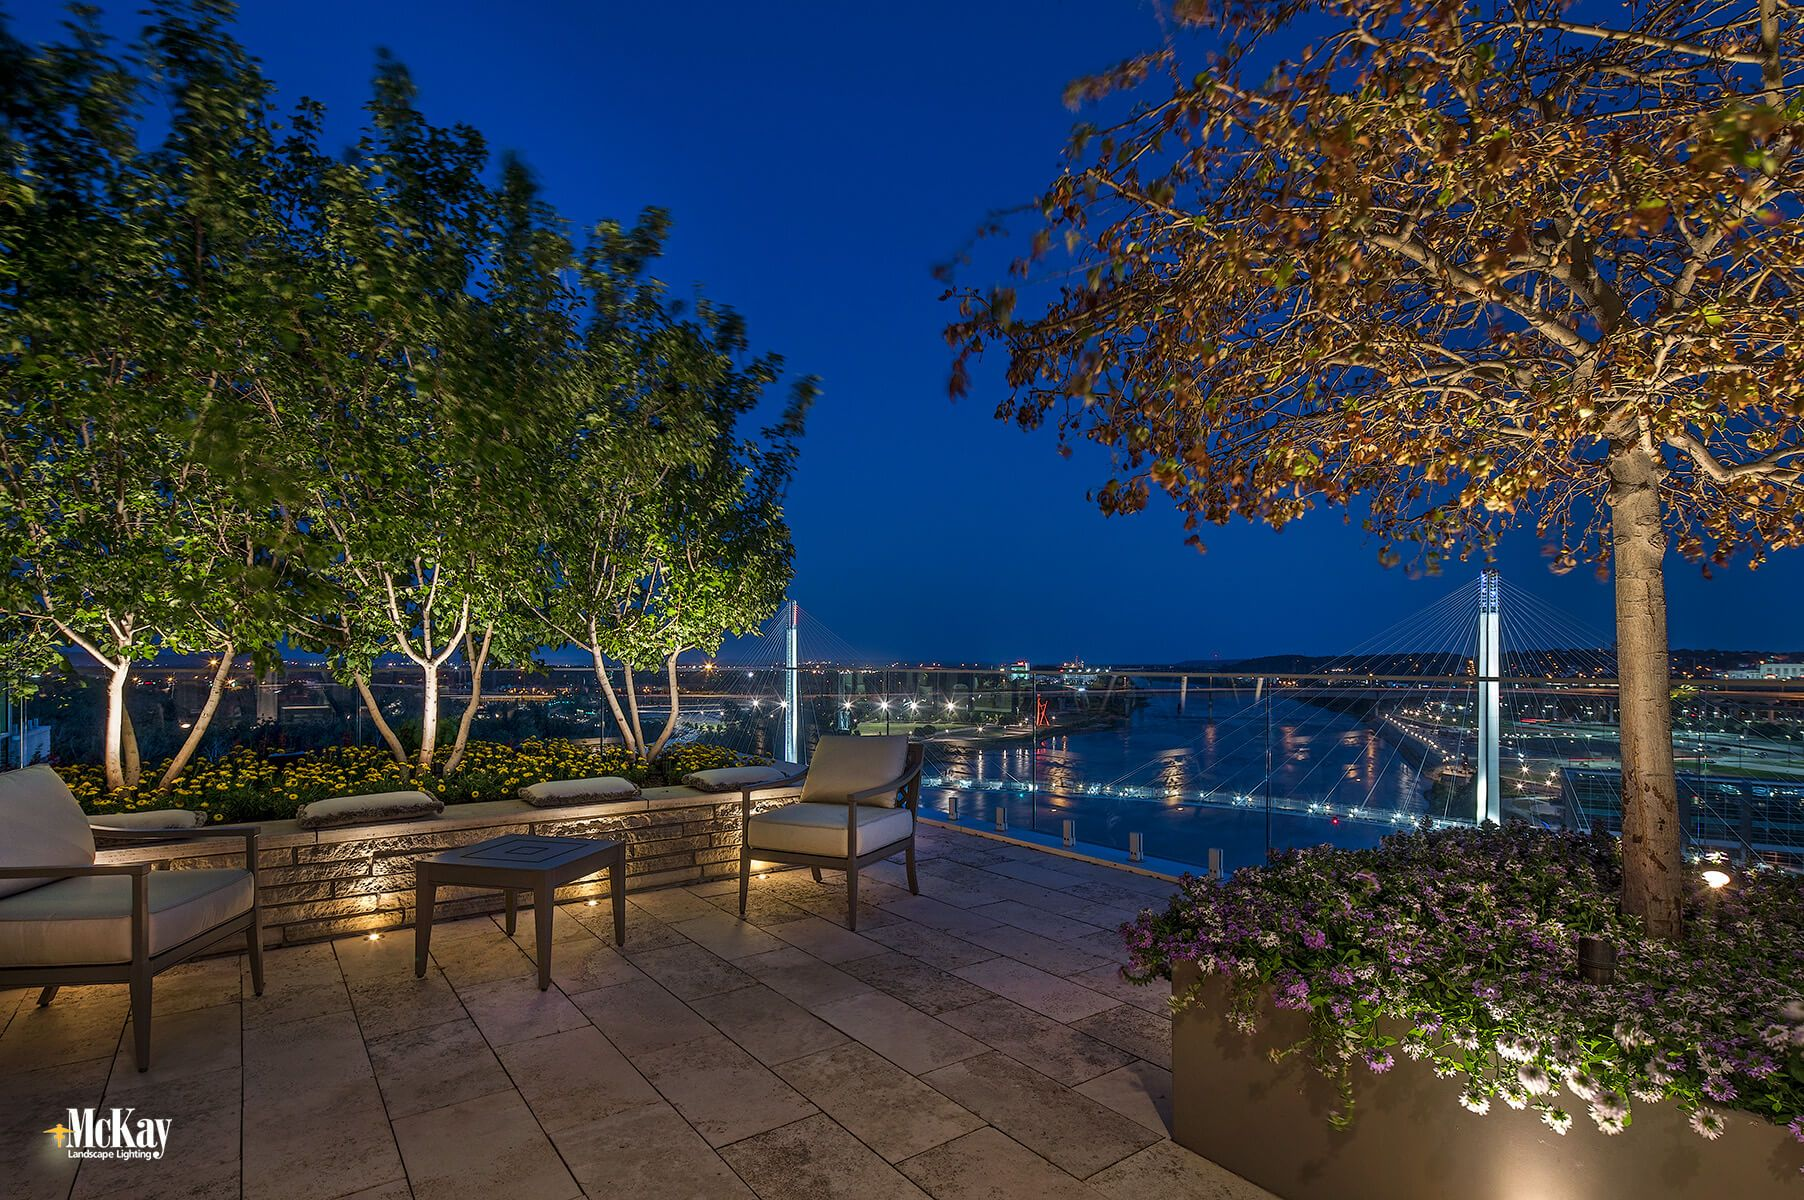 rooftop lighting. See More Photos Of The Landscape Lighting Design For This Relaxing Rooftop Garden Patio Located In O